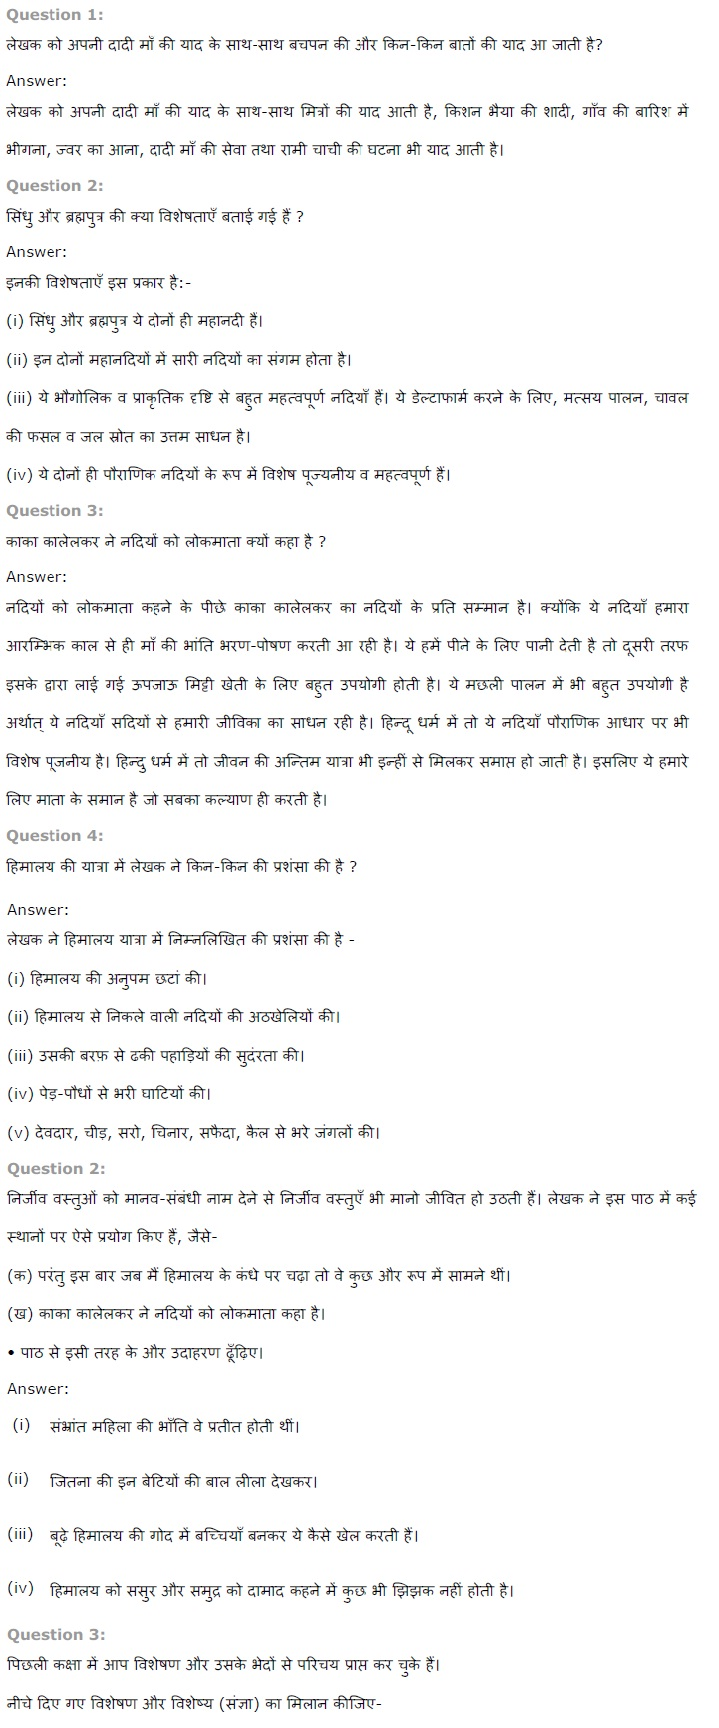 NCERT Solutions for Class 7th Hindi Chapter 3 हिमालय की बेटियां PDF Download